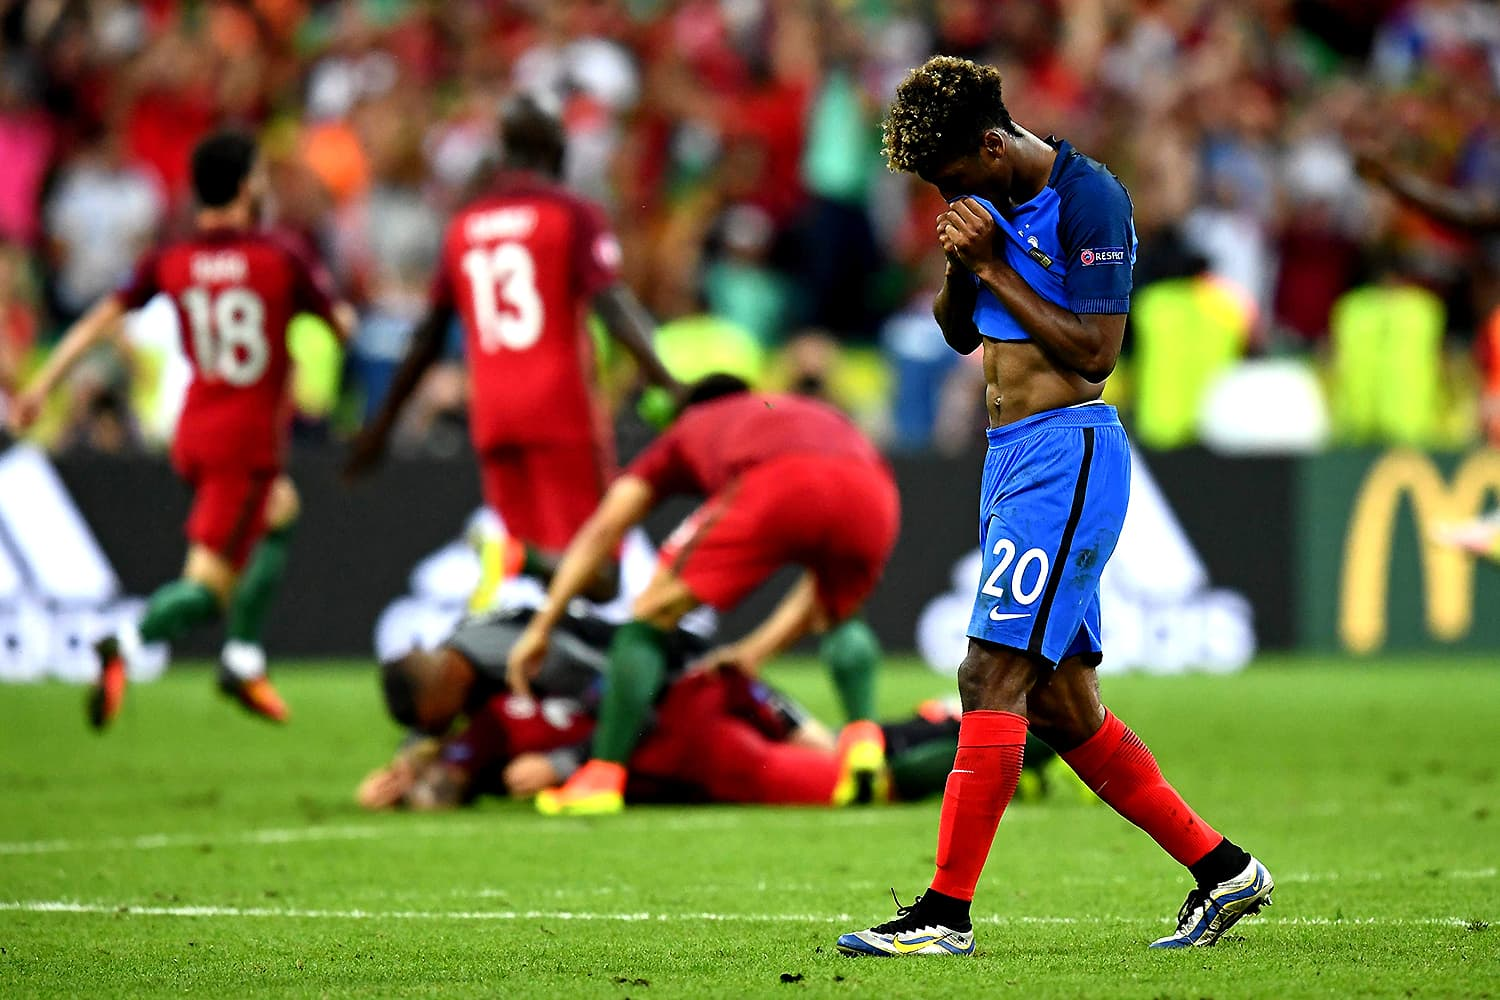 Kingsley Coman of France hides his face as Portugal players celebrate victory in the background. — AFP